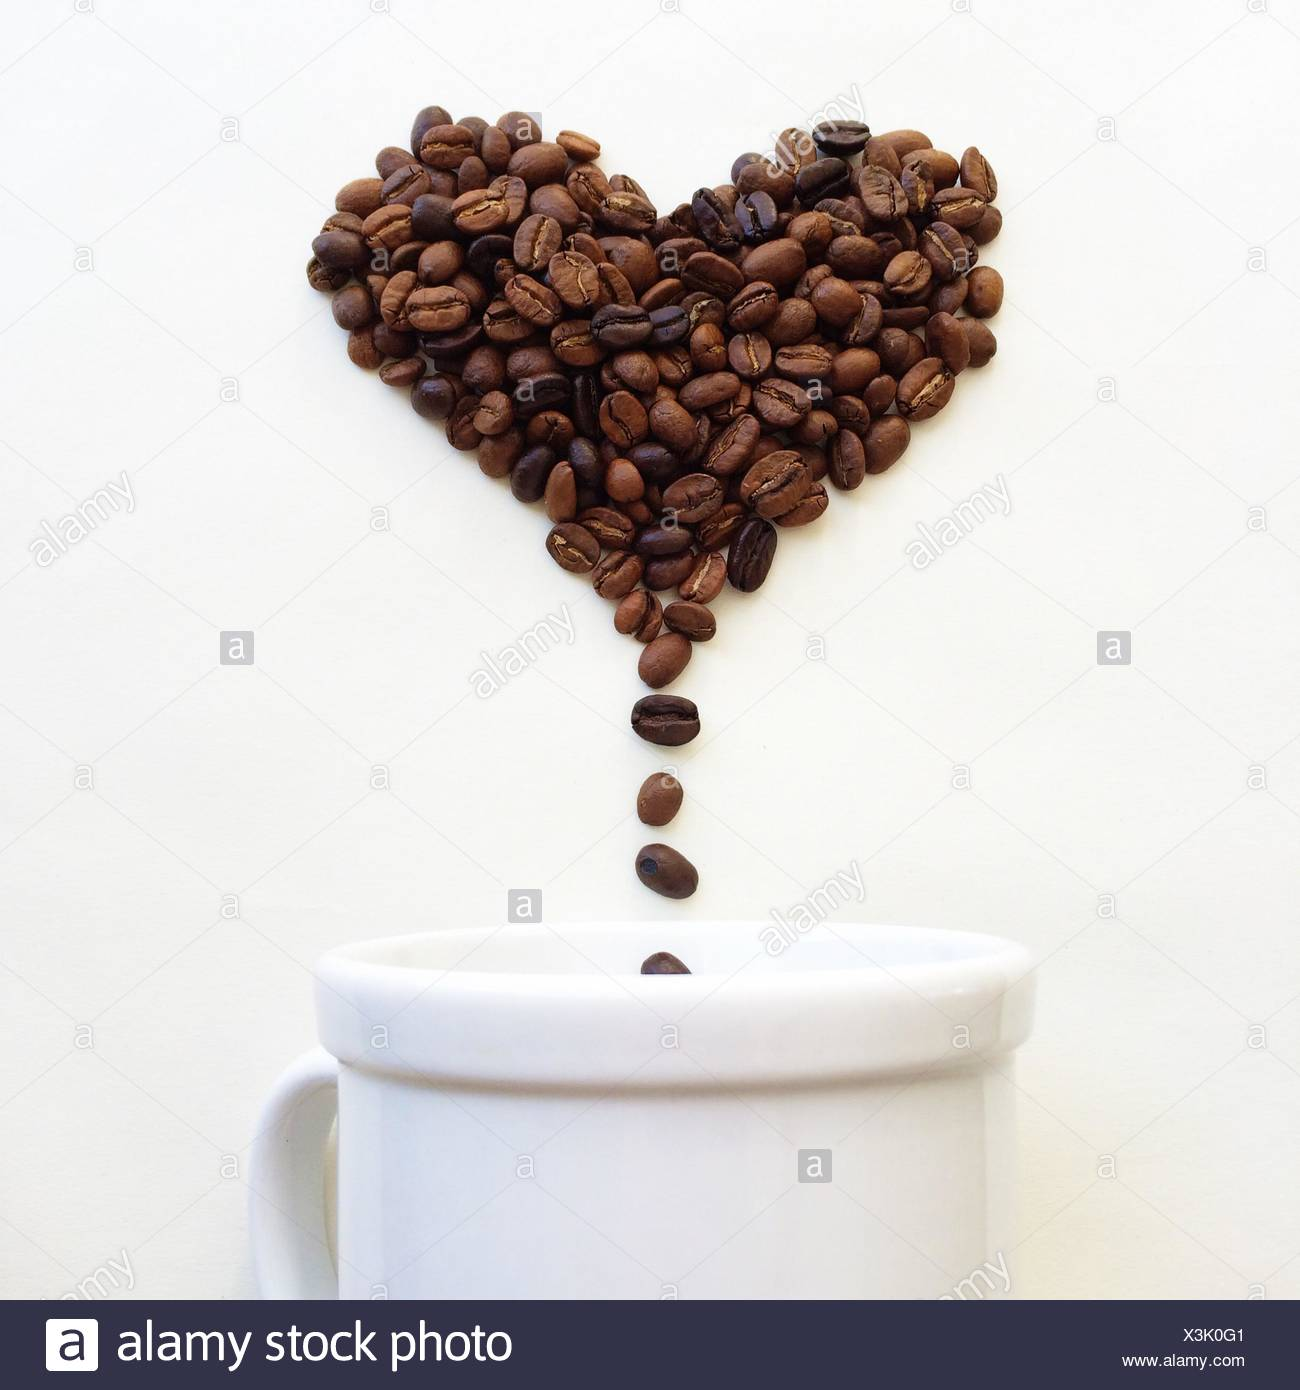 Coffee beans in shape of heart dropping into a coffee cup Stock Photo